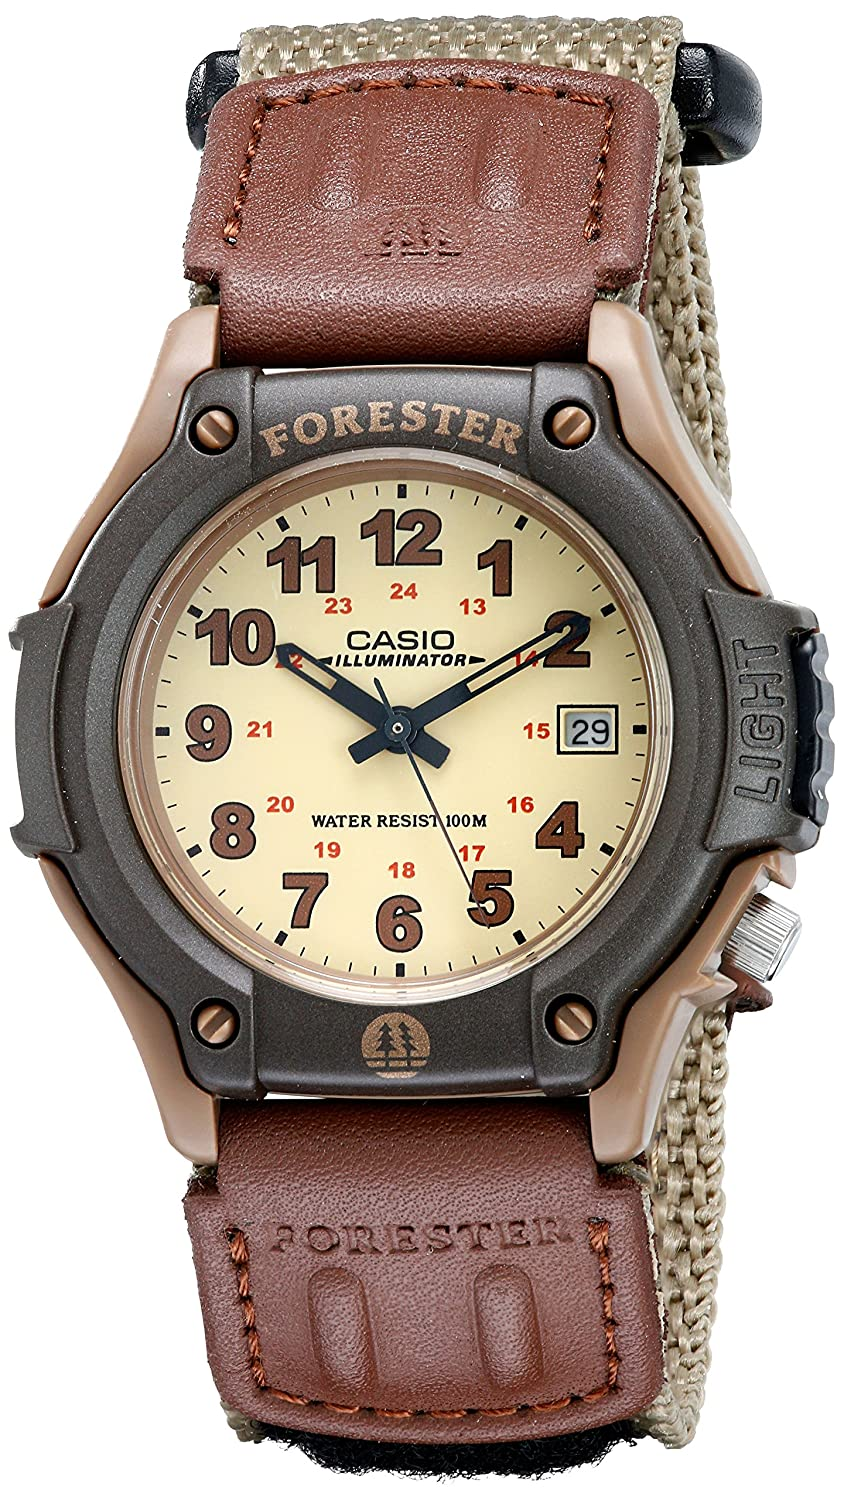 casio forester manual